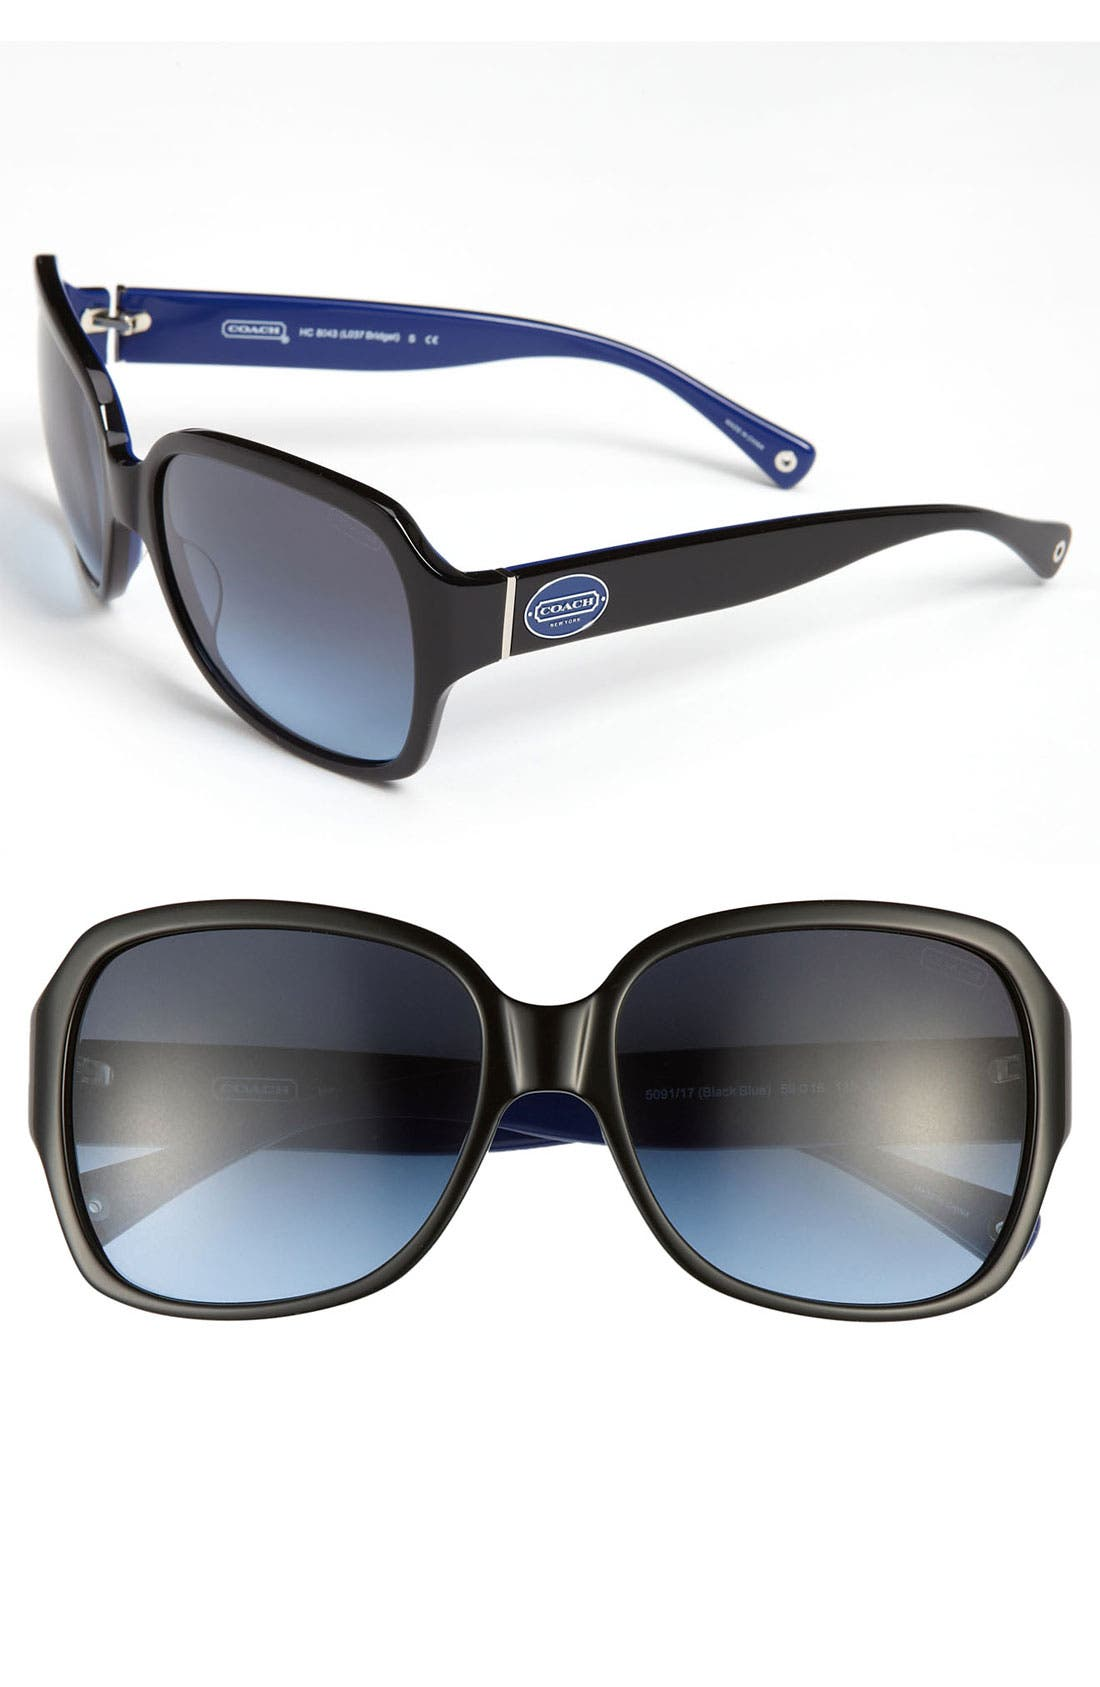 Alternate Image 1 Selected - COACH 59mm Oversized Sunglasses